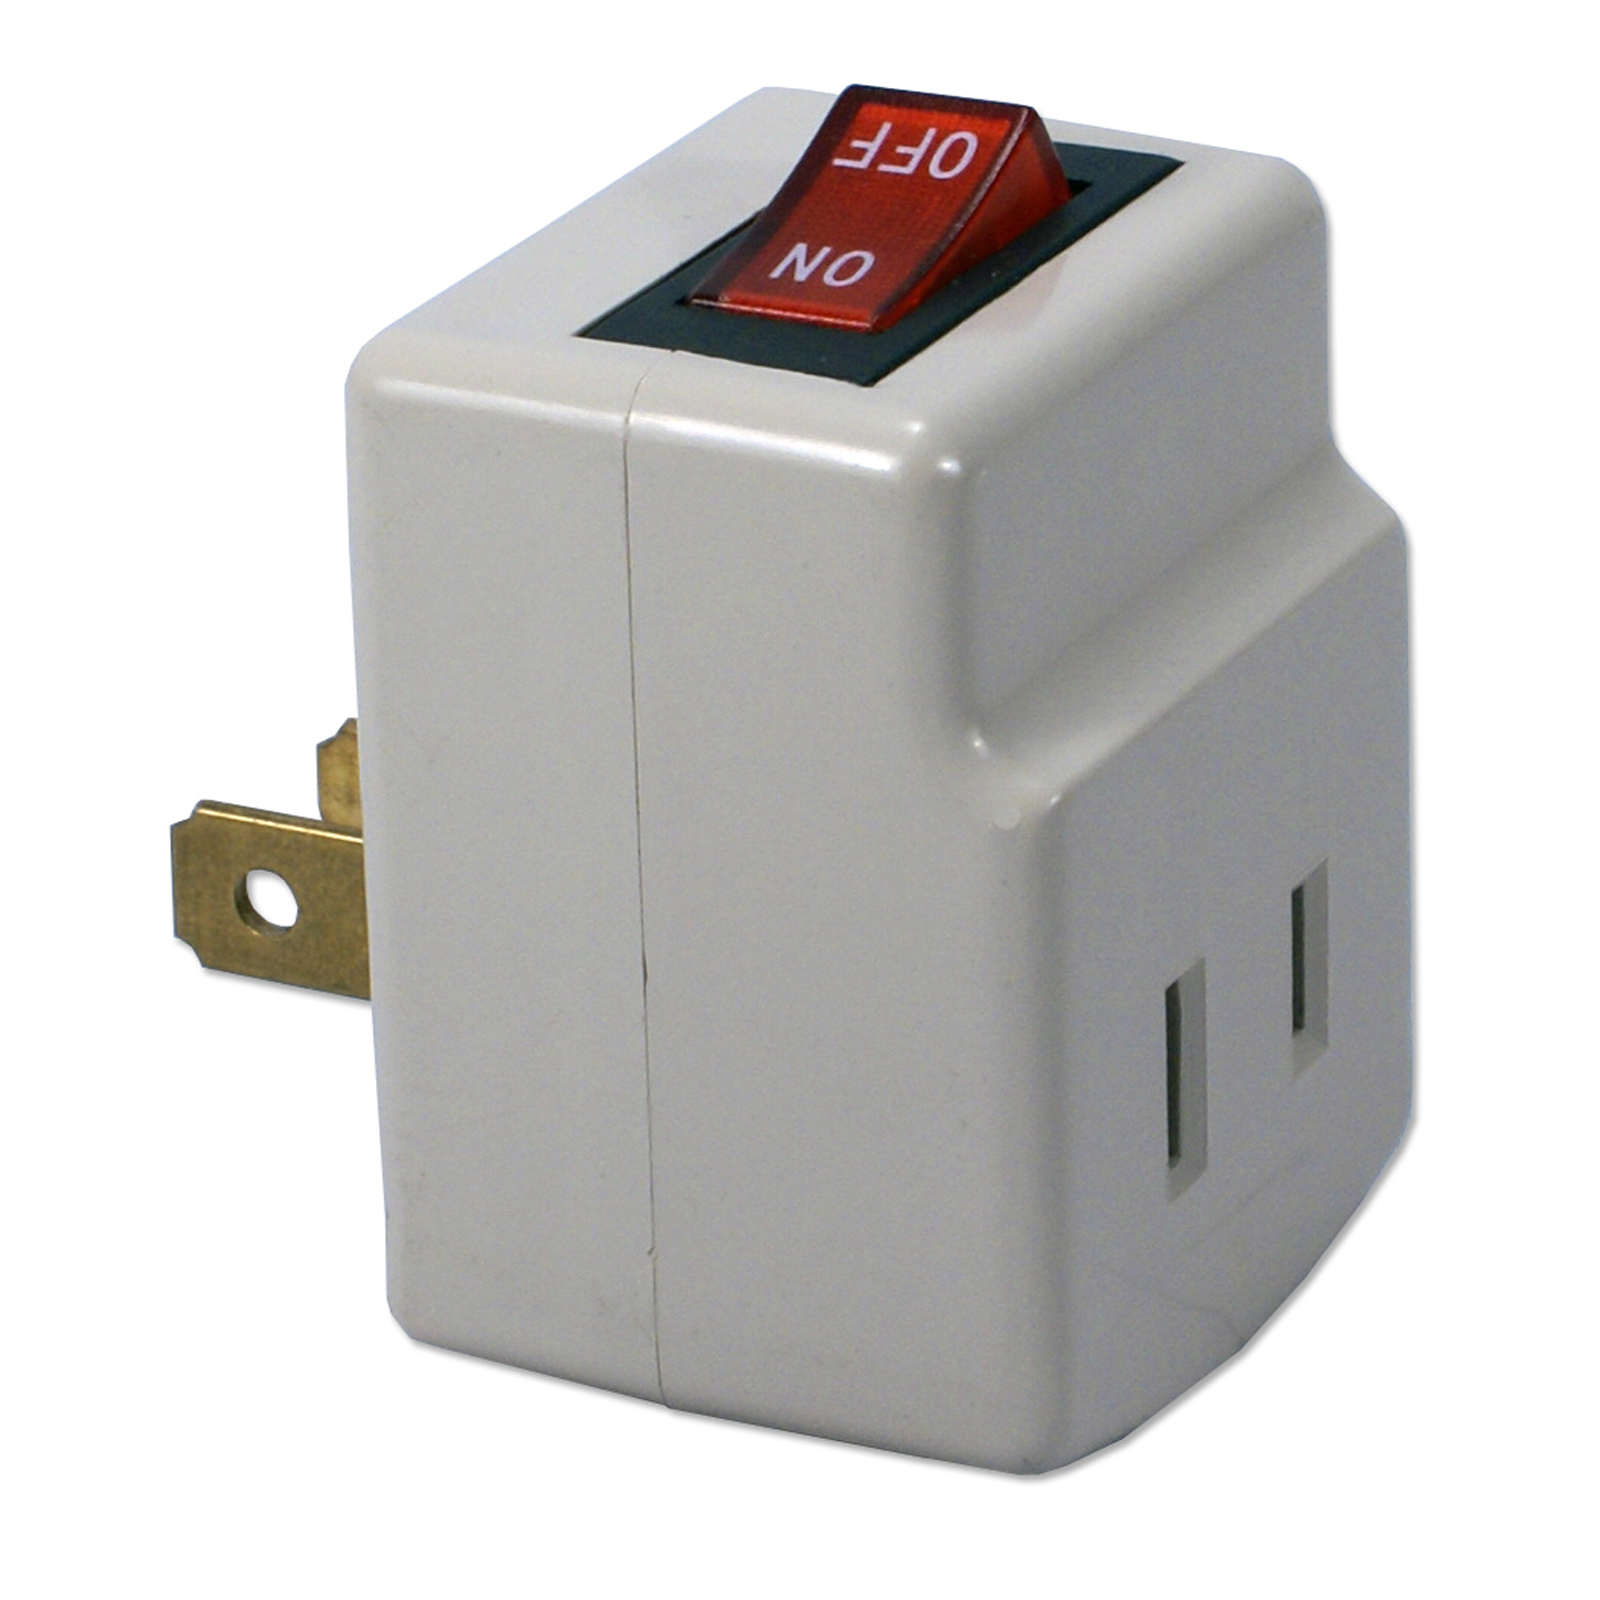 QVS Single-Port Power Adaptor with Lighted On/Off Switch